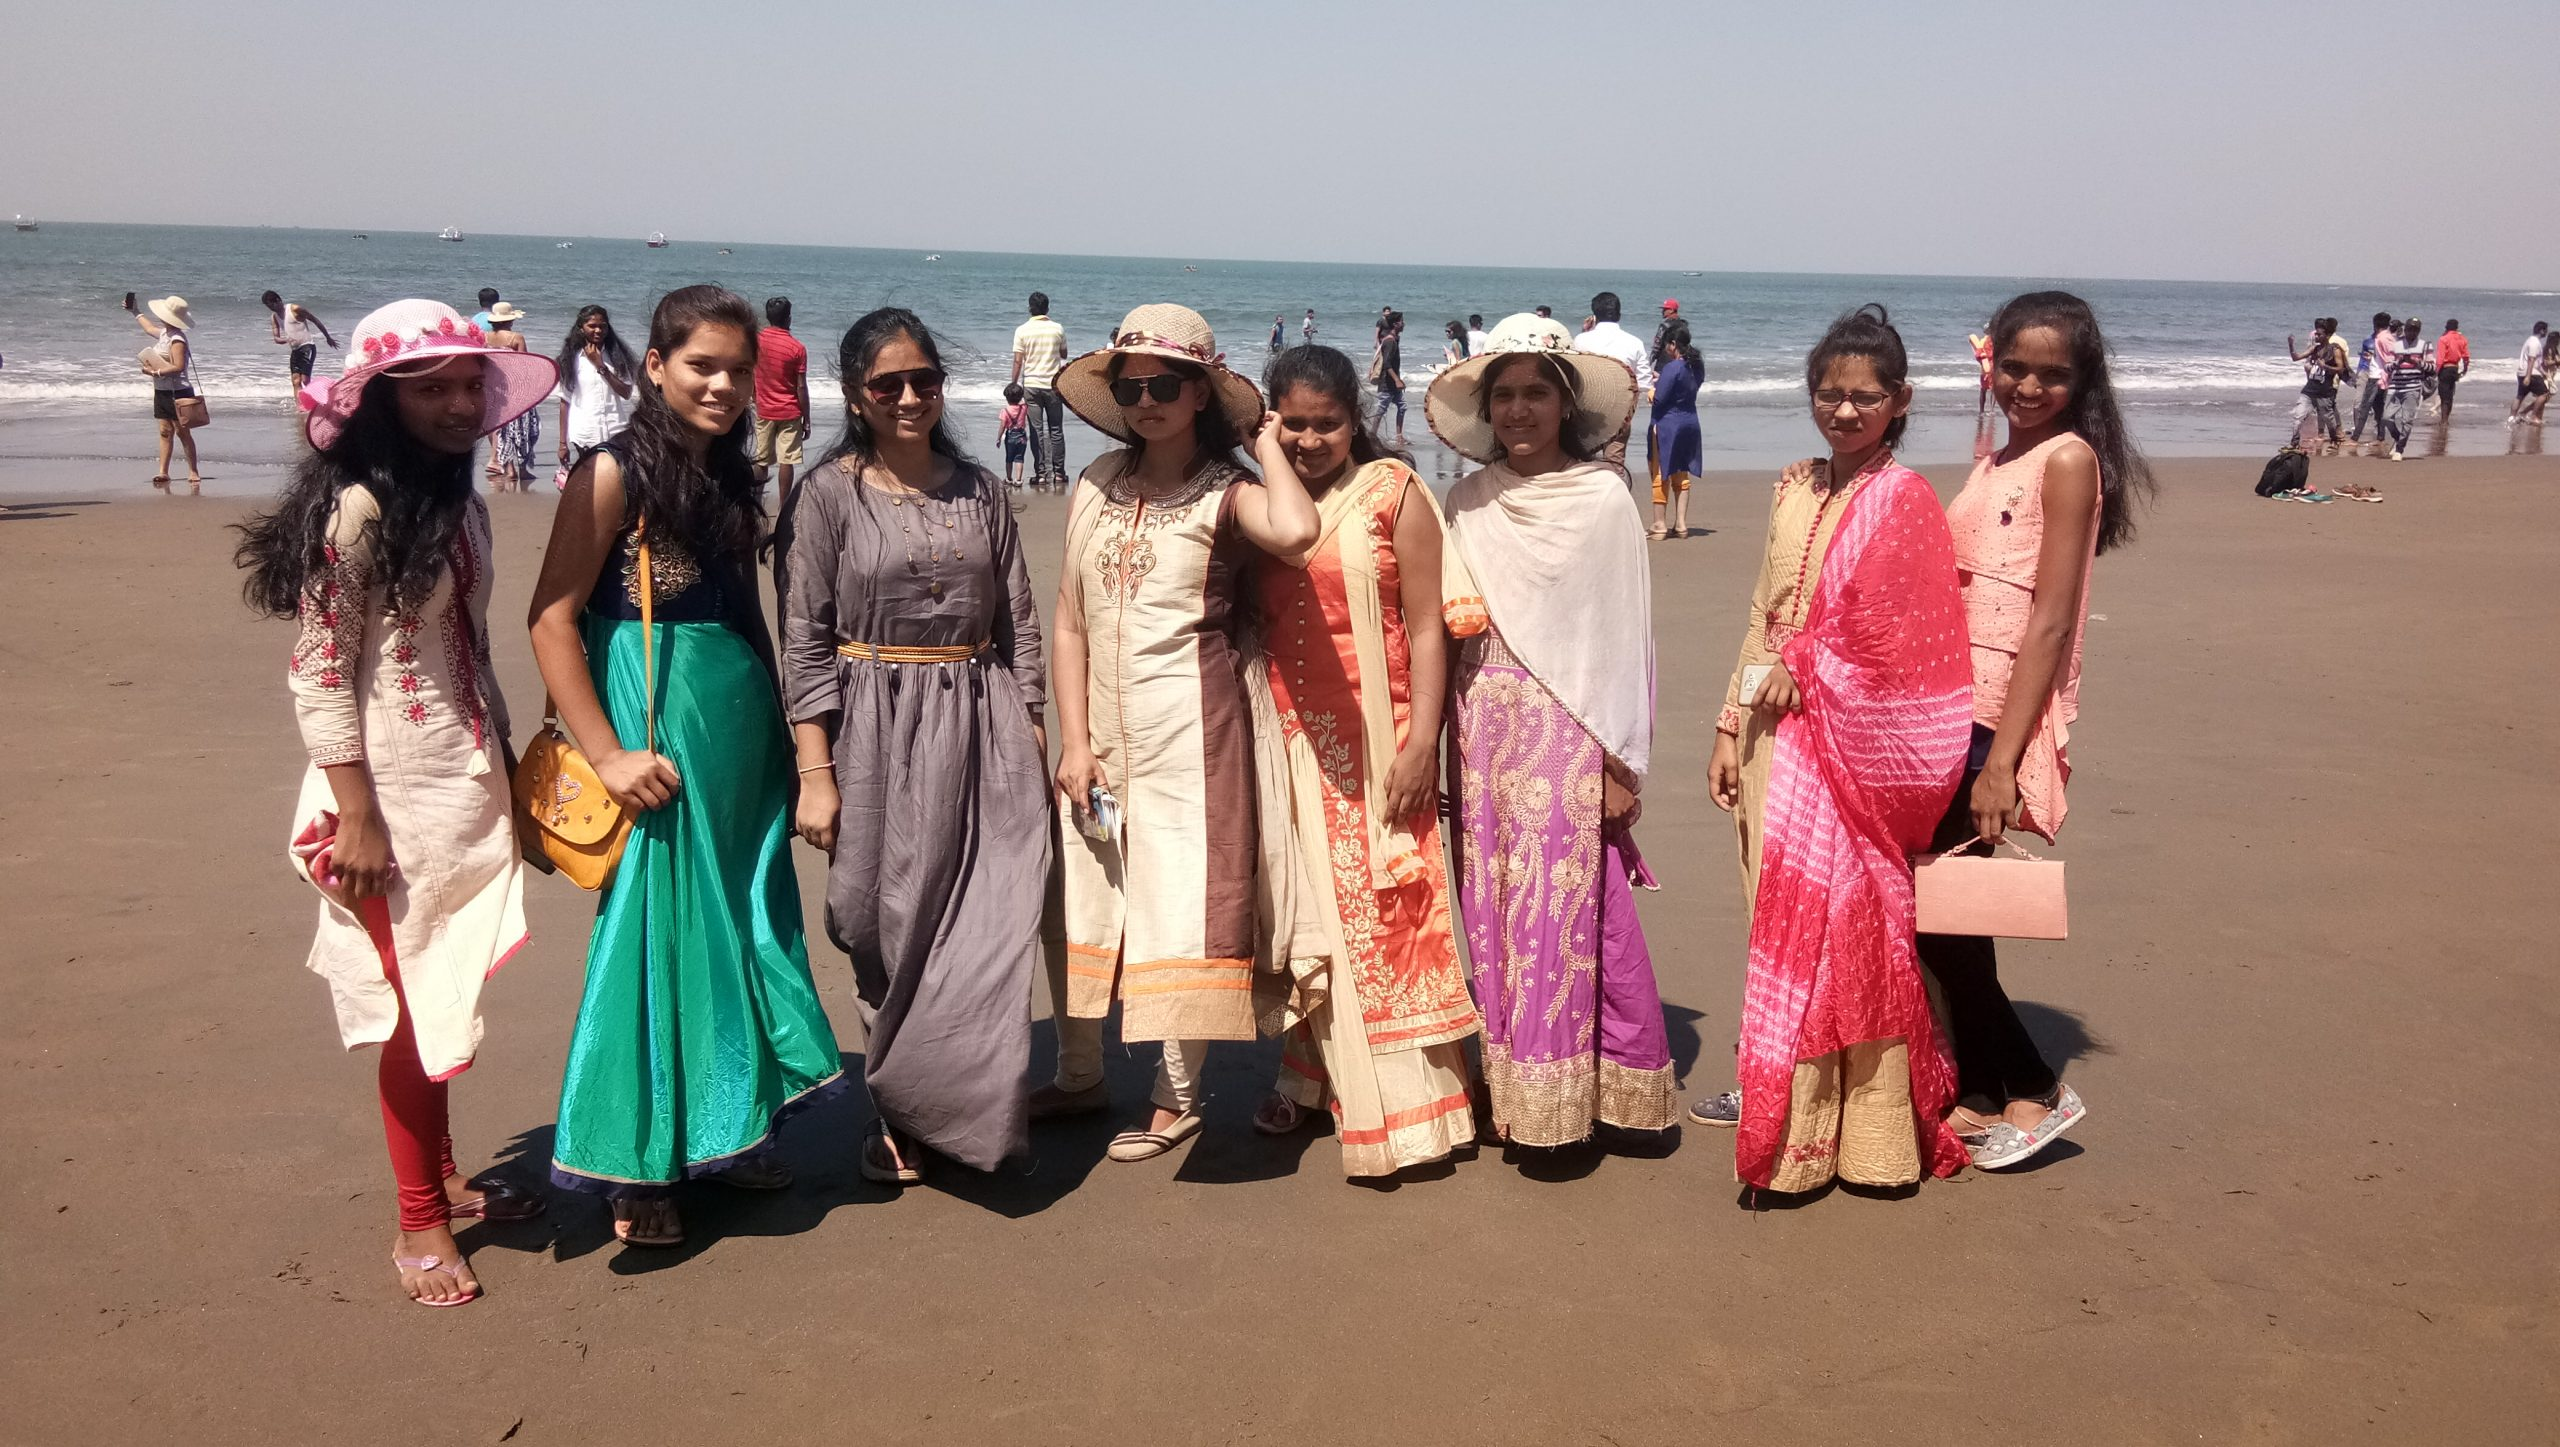 A group of girls at a beach